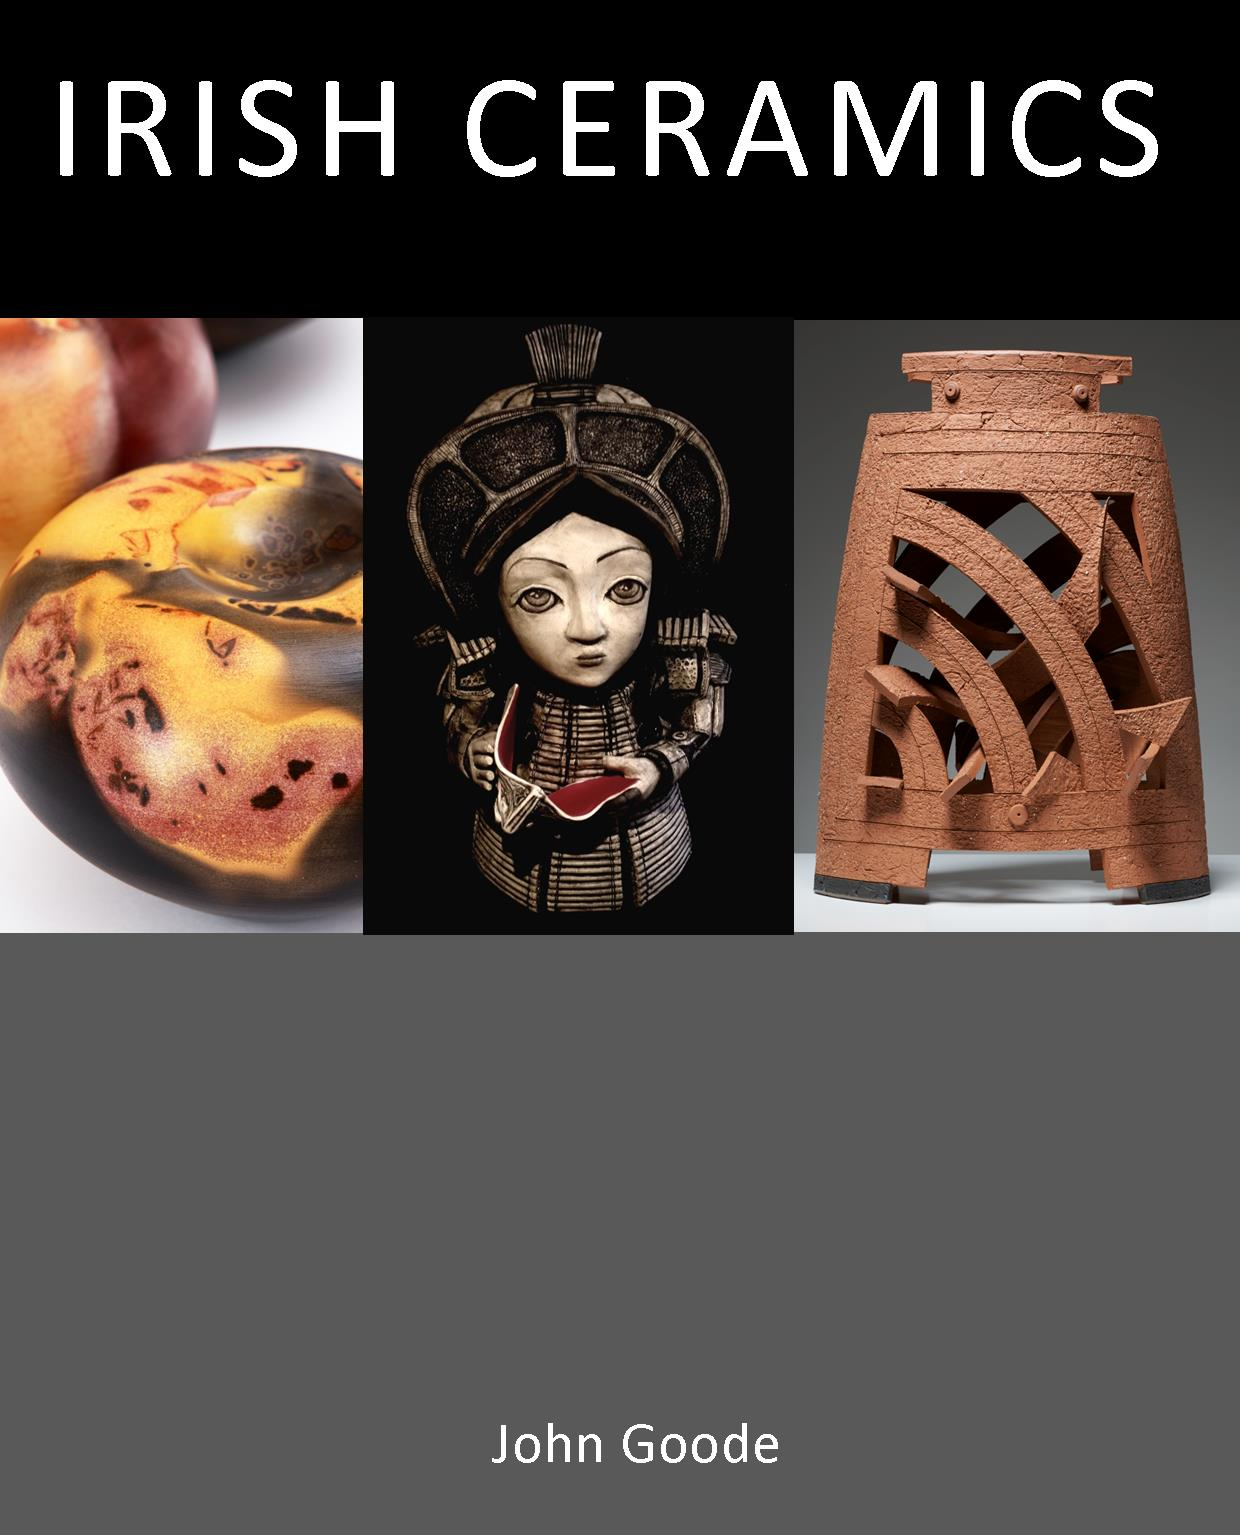 Irish Ceramics - The very best of Irish CeramicsBooks by Mill Cove Galleries